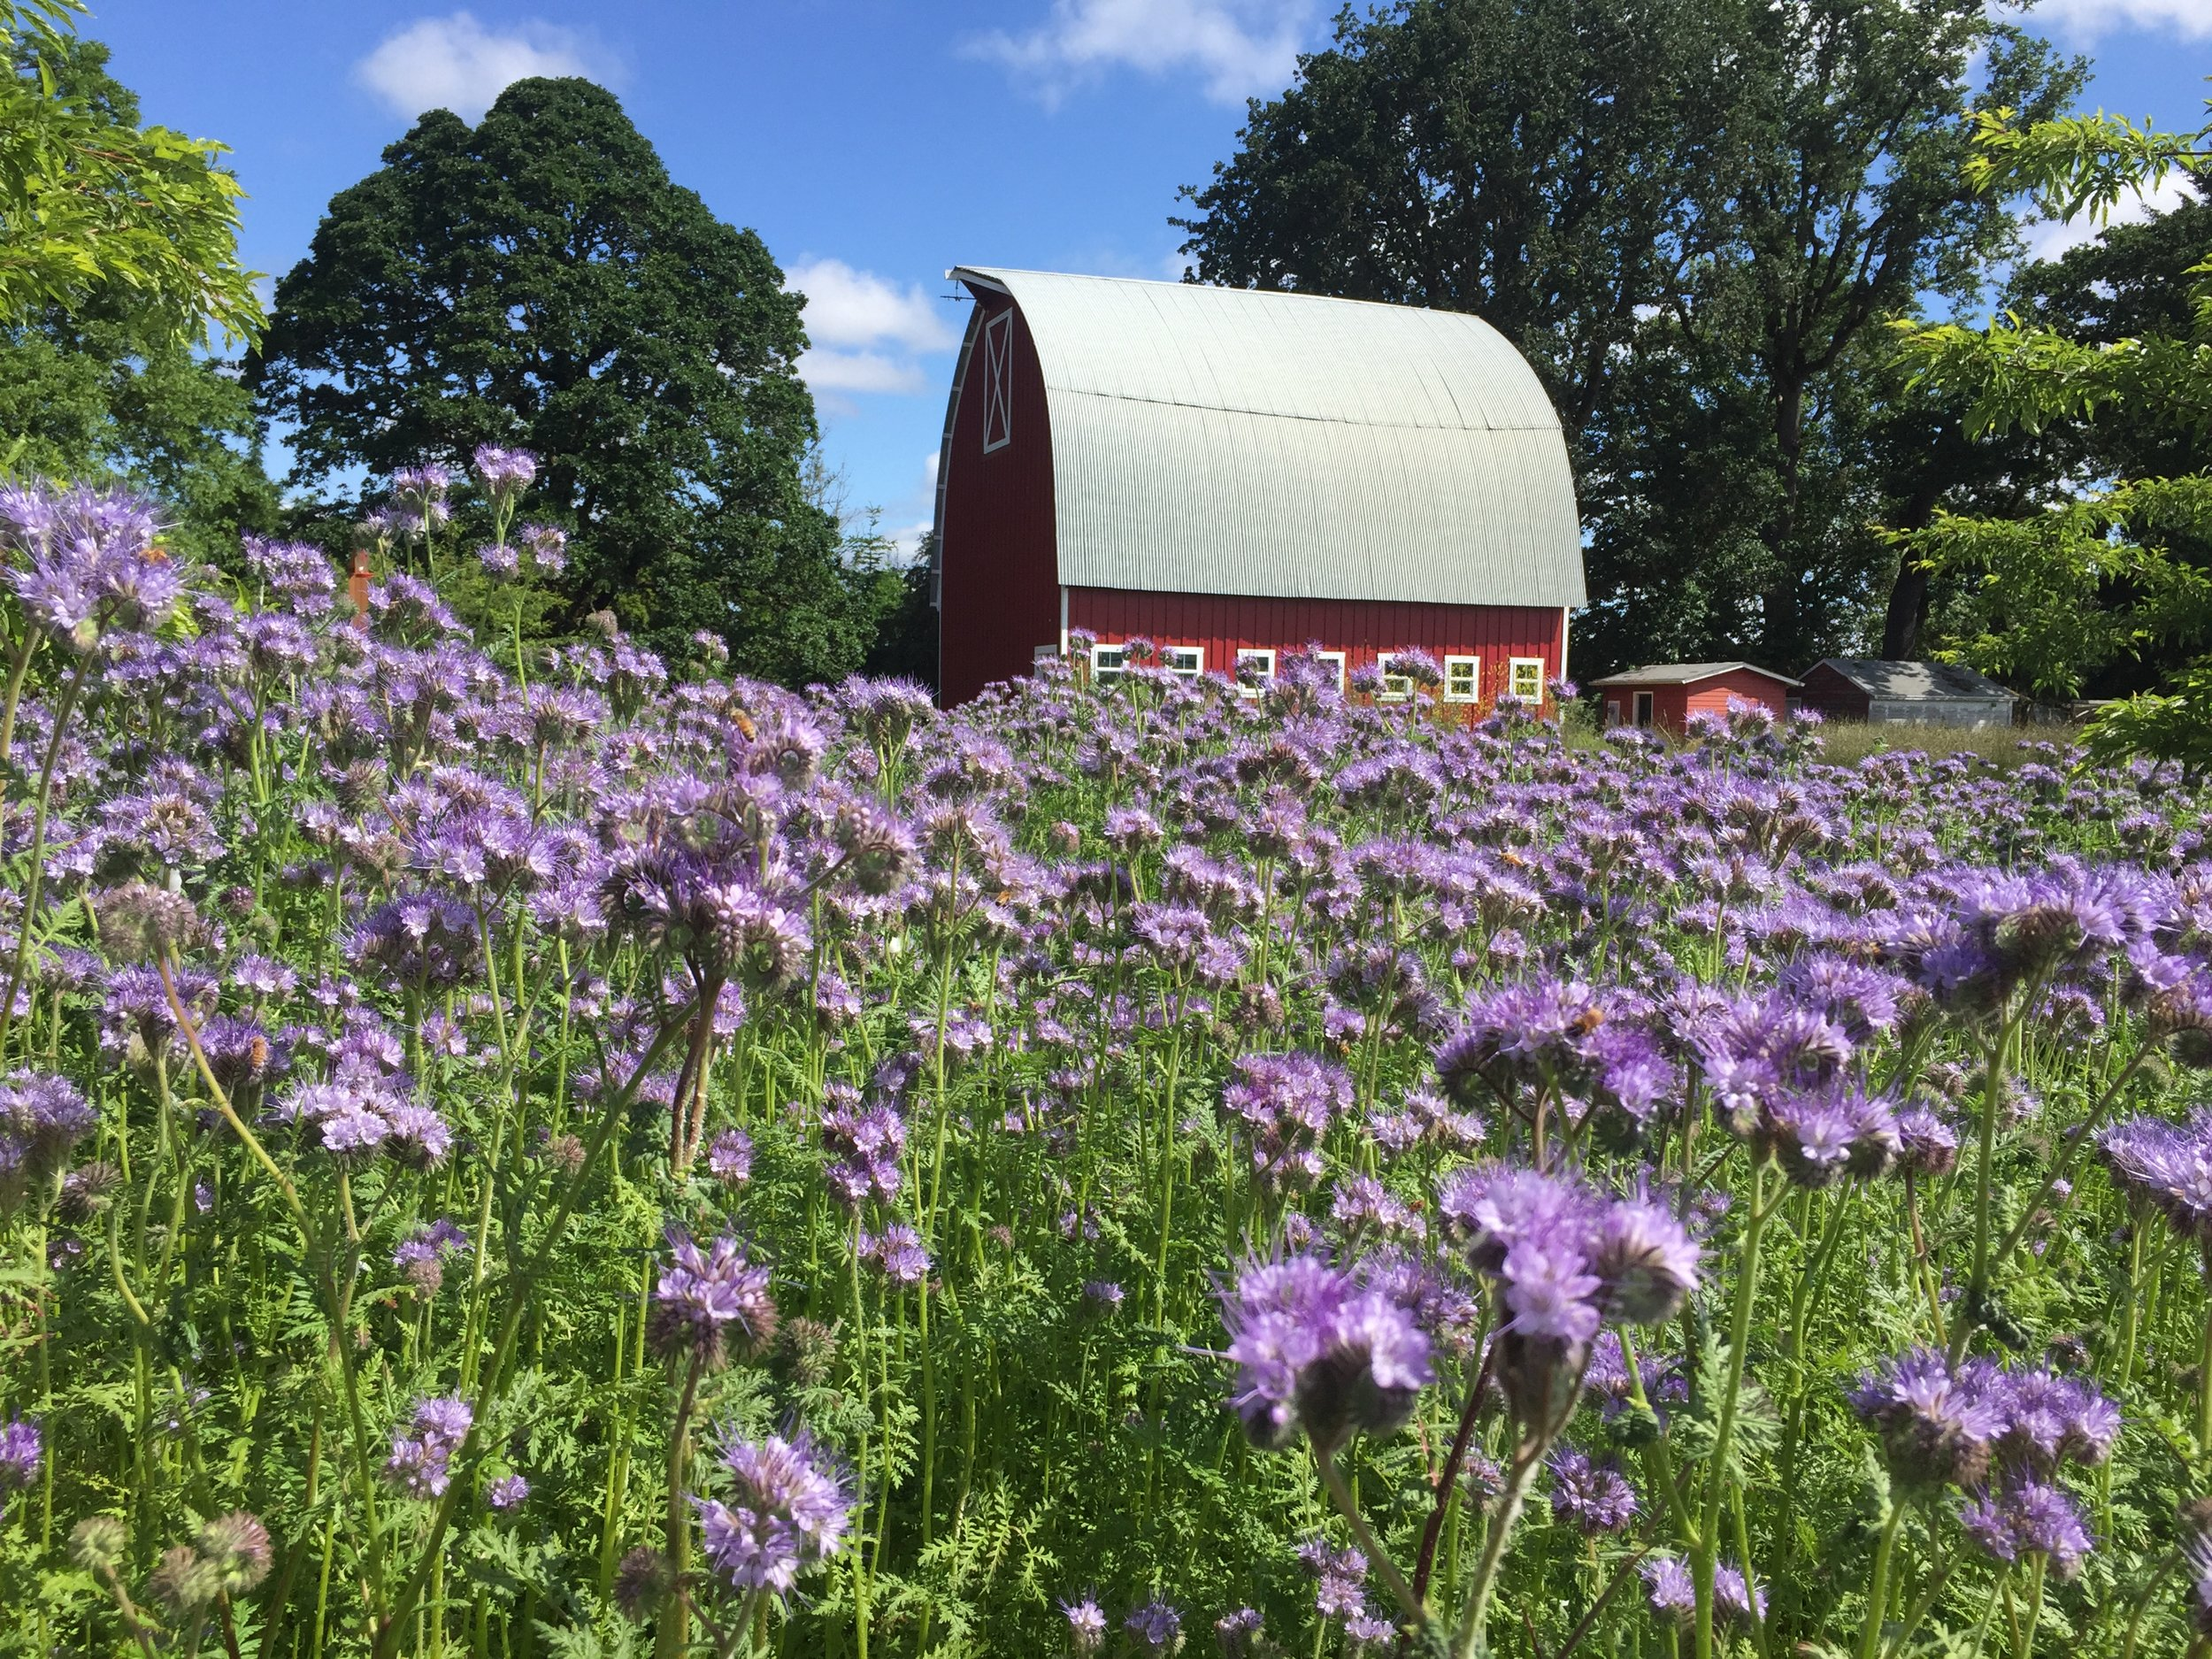 Patch of bee-friendly phacelia. Photo by Michael O'Loughlin.